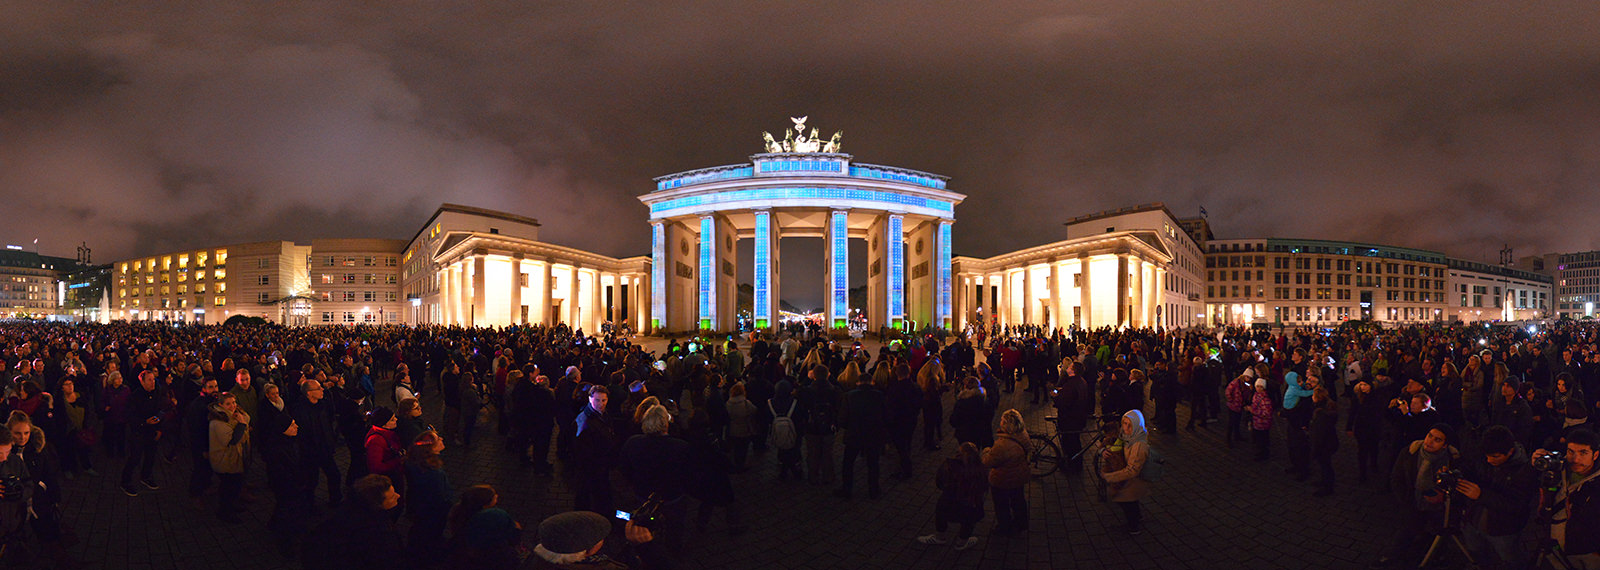 Festival of Lights, Brandenburg, Berlin - Panorama 360°